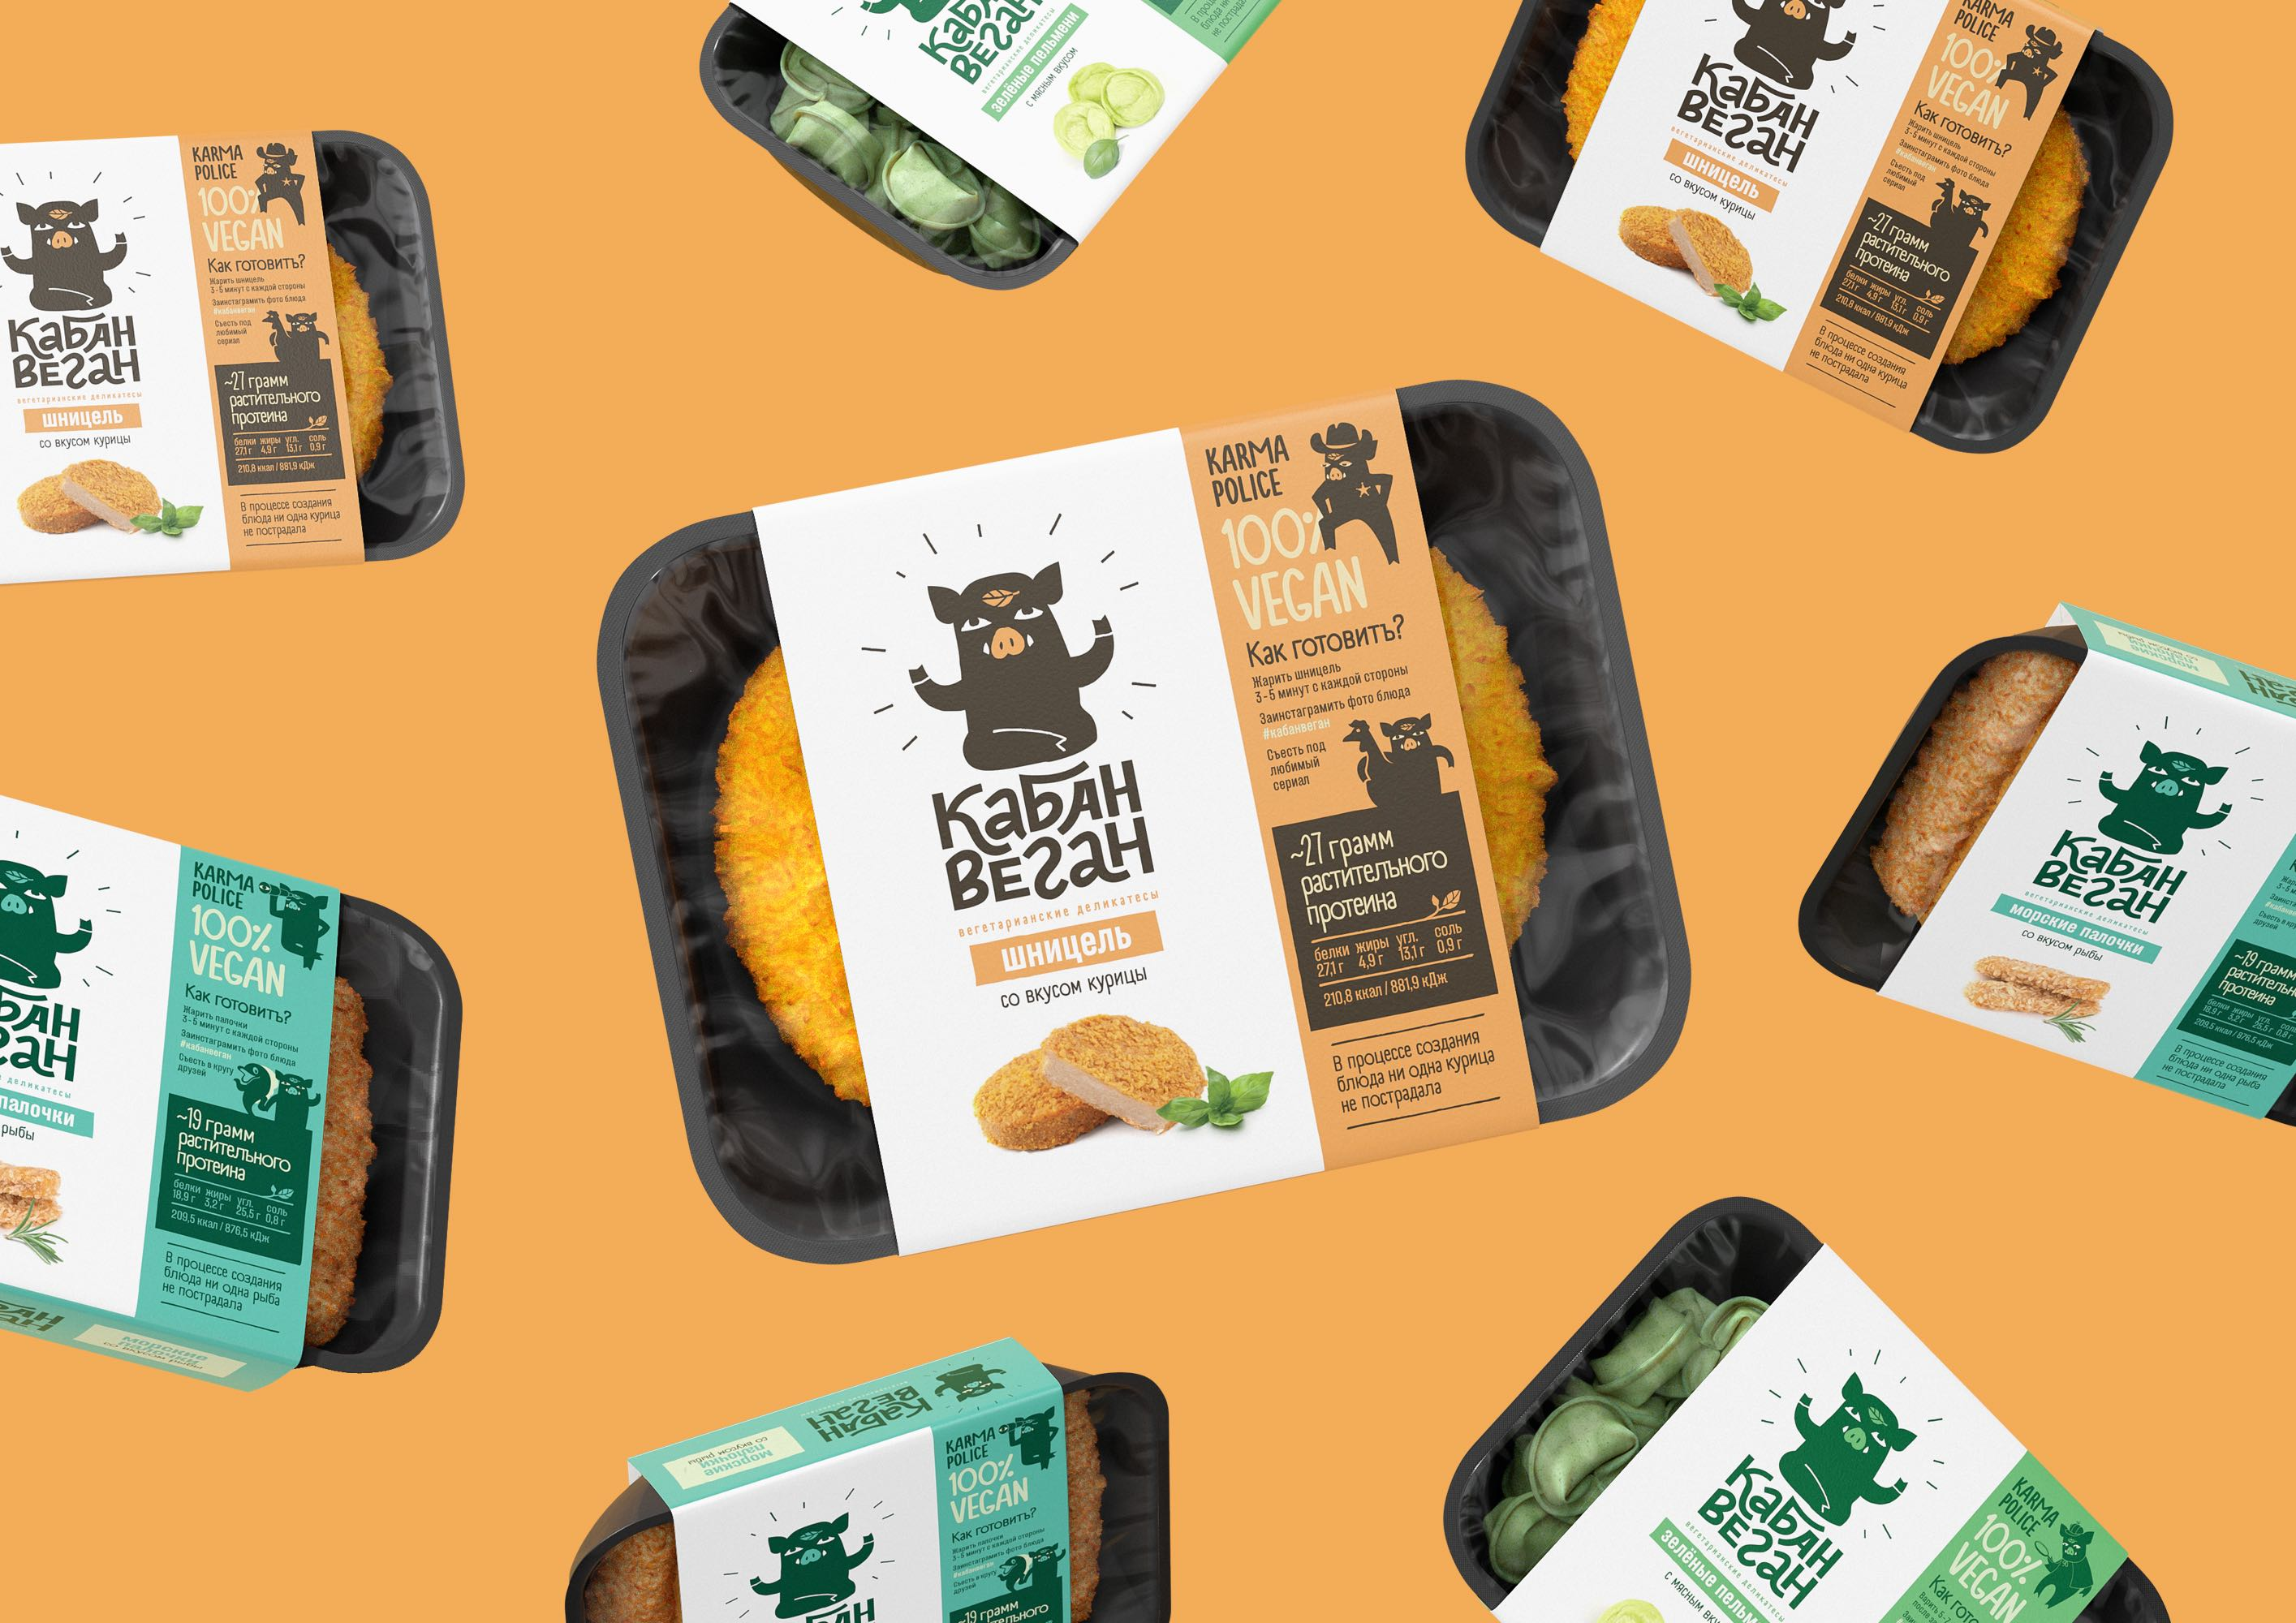 Karma Police Vegan Convenience Foods Kaban Vegan Brand and Packaging Design Created by Ohmybrand